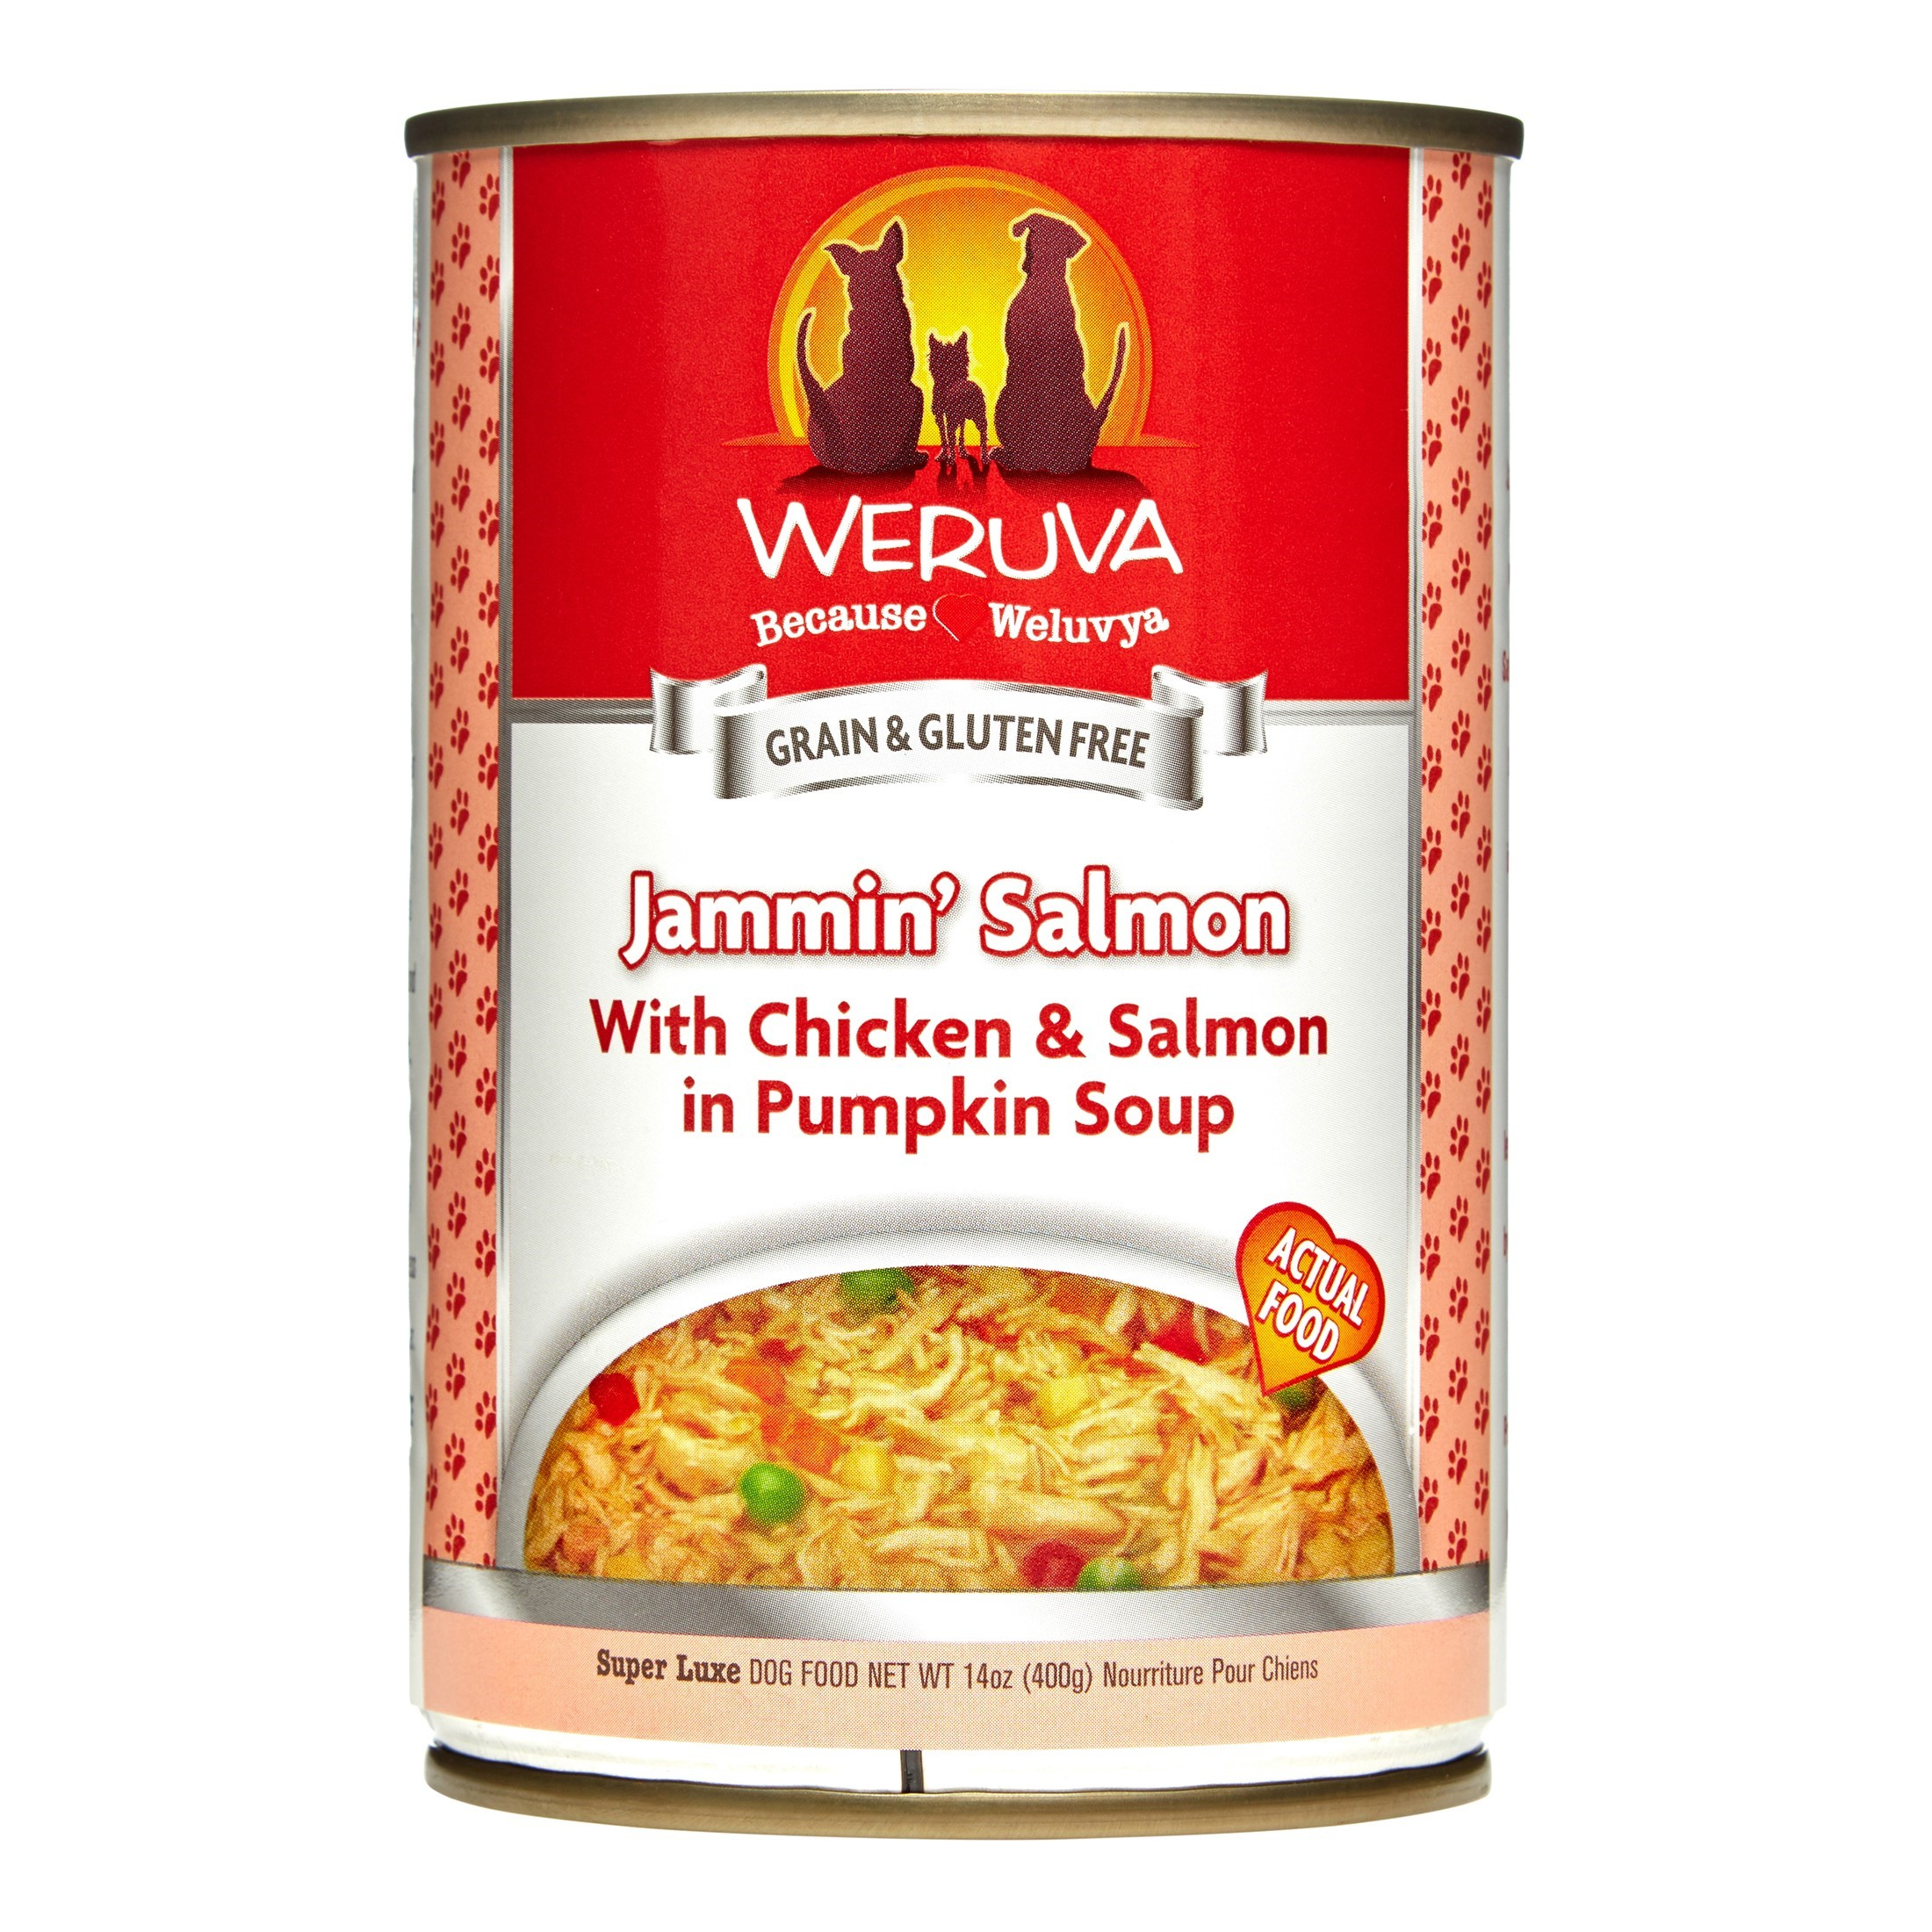 Weruva Human Style Grain-Free Jamin' Salmon with Chicken & Salmon in Pumpkin Soup Wet Dog Food, 14 Oz., Pack of 12